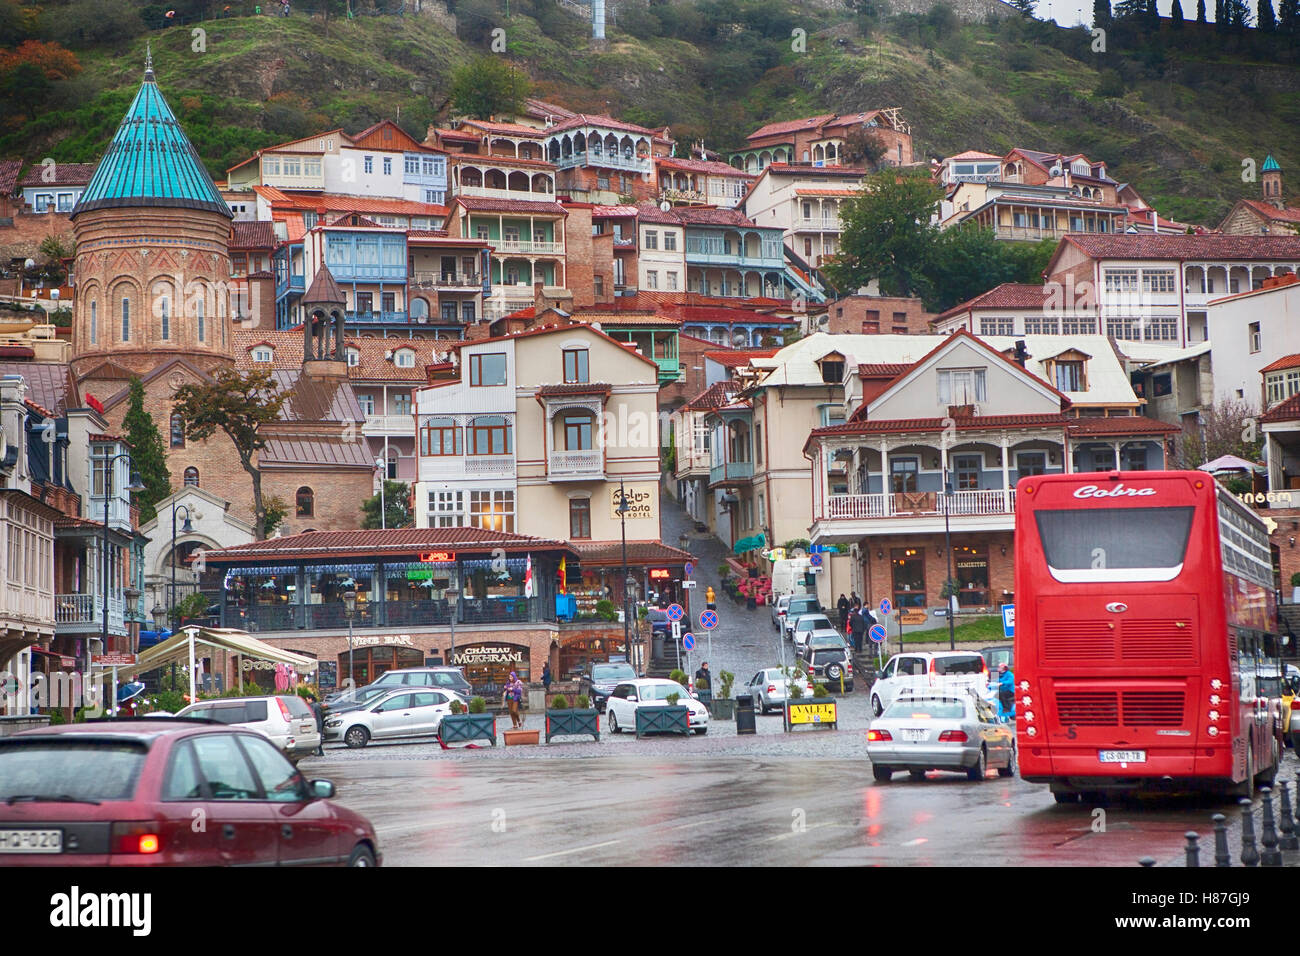 TBILISI, GEORGIA, 16 AUGUST, 2016: View of Tbilisi Old town Sololaki Stock Photo